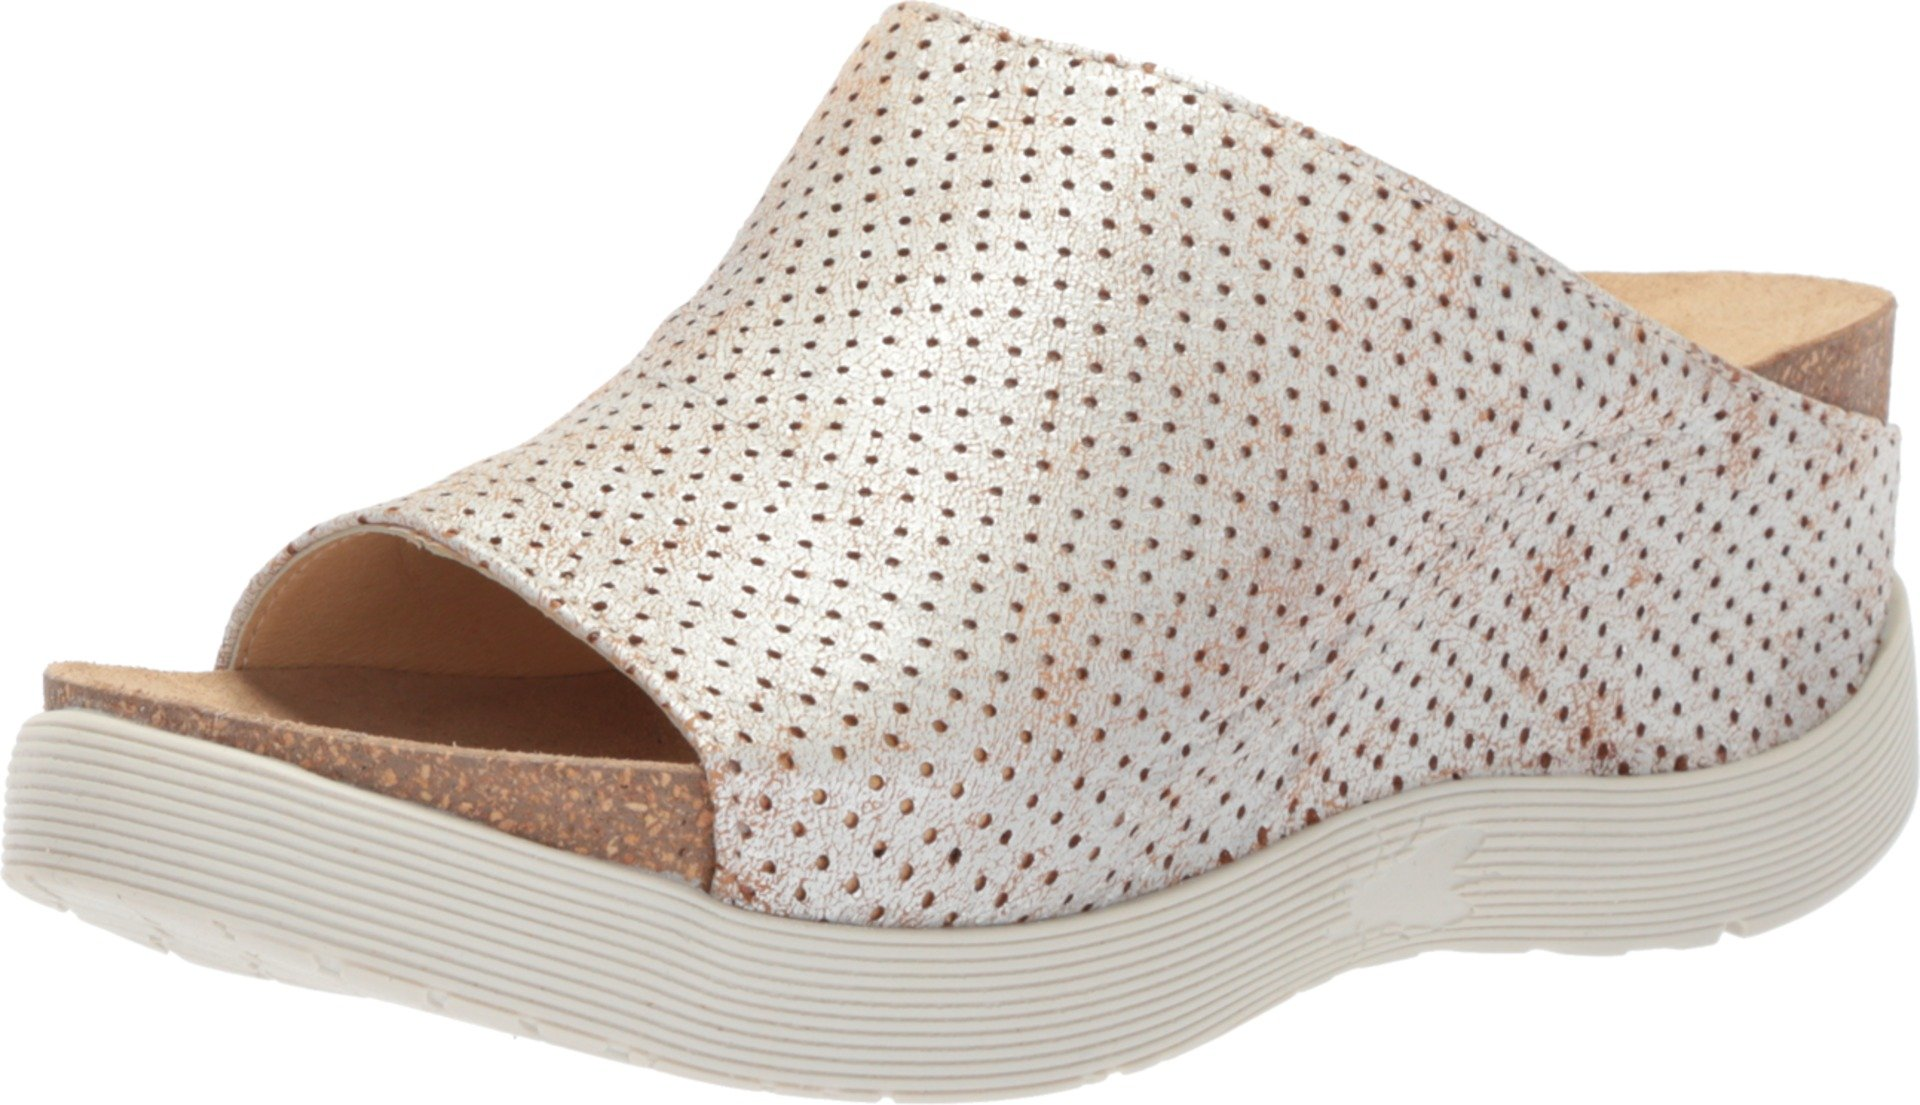 FLY London Women's WHIN176FLY Pearl Cool 37 M EU